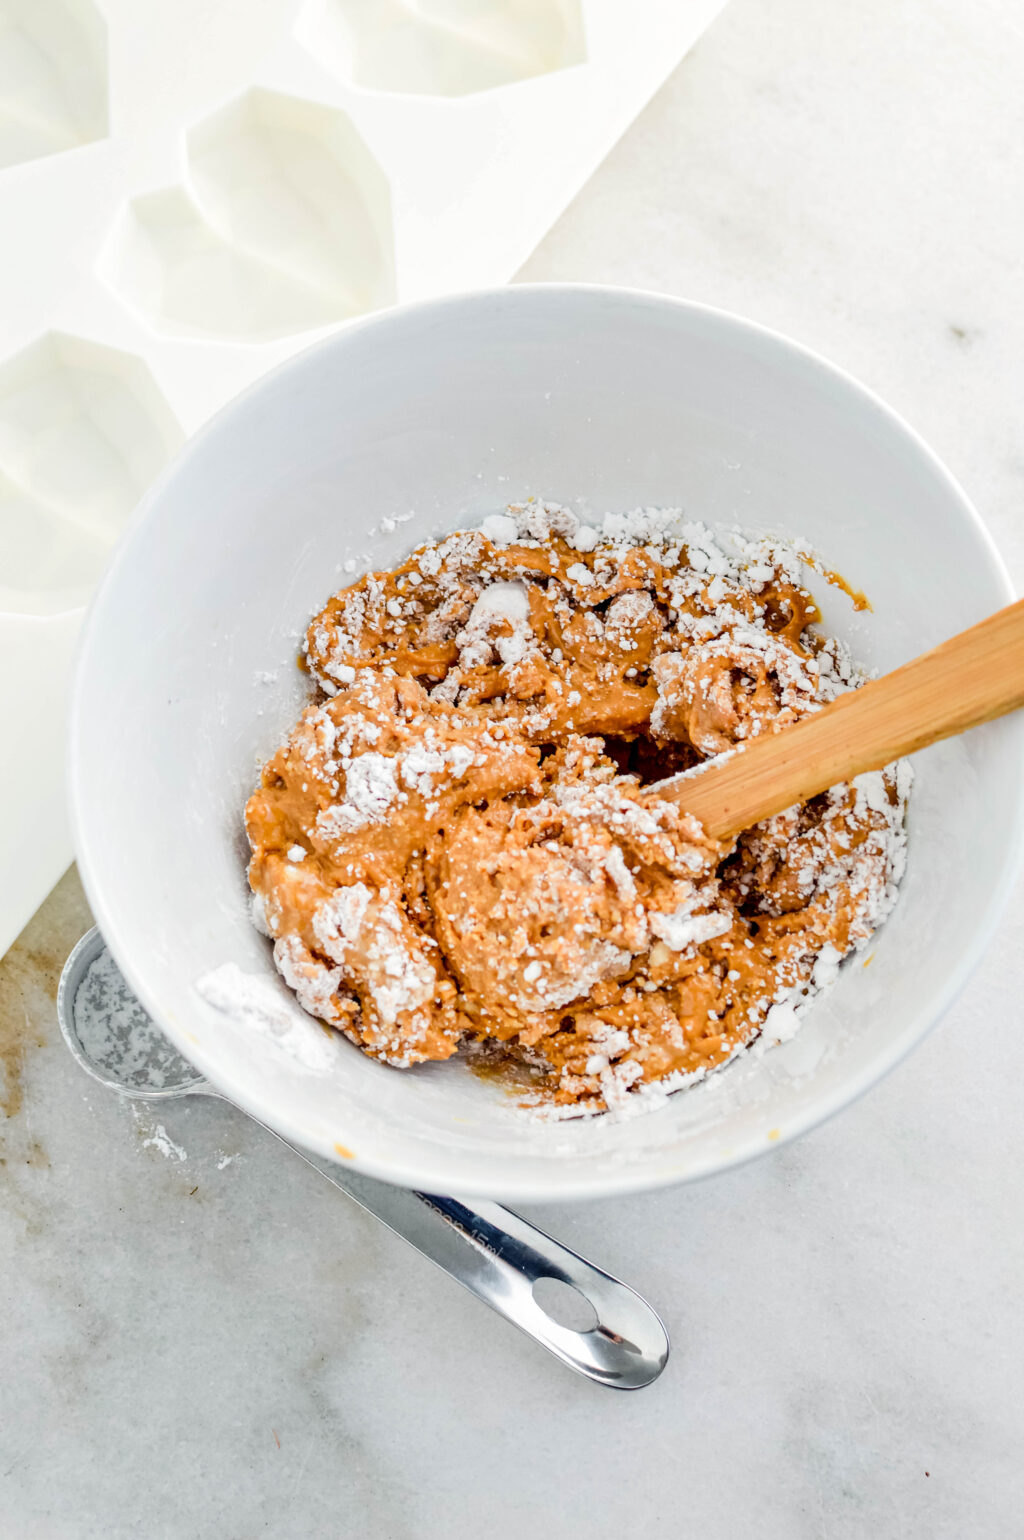 homemade peanut butter filling in a bowl